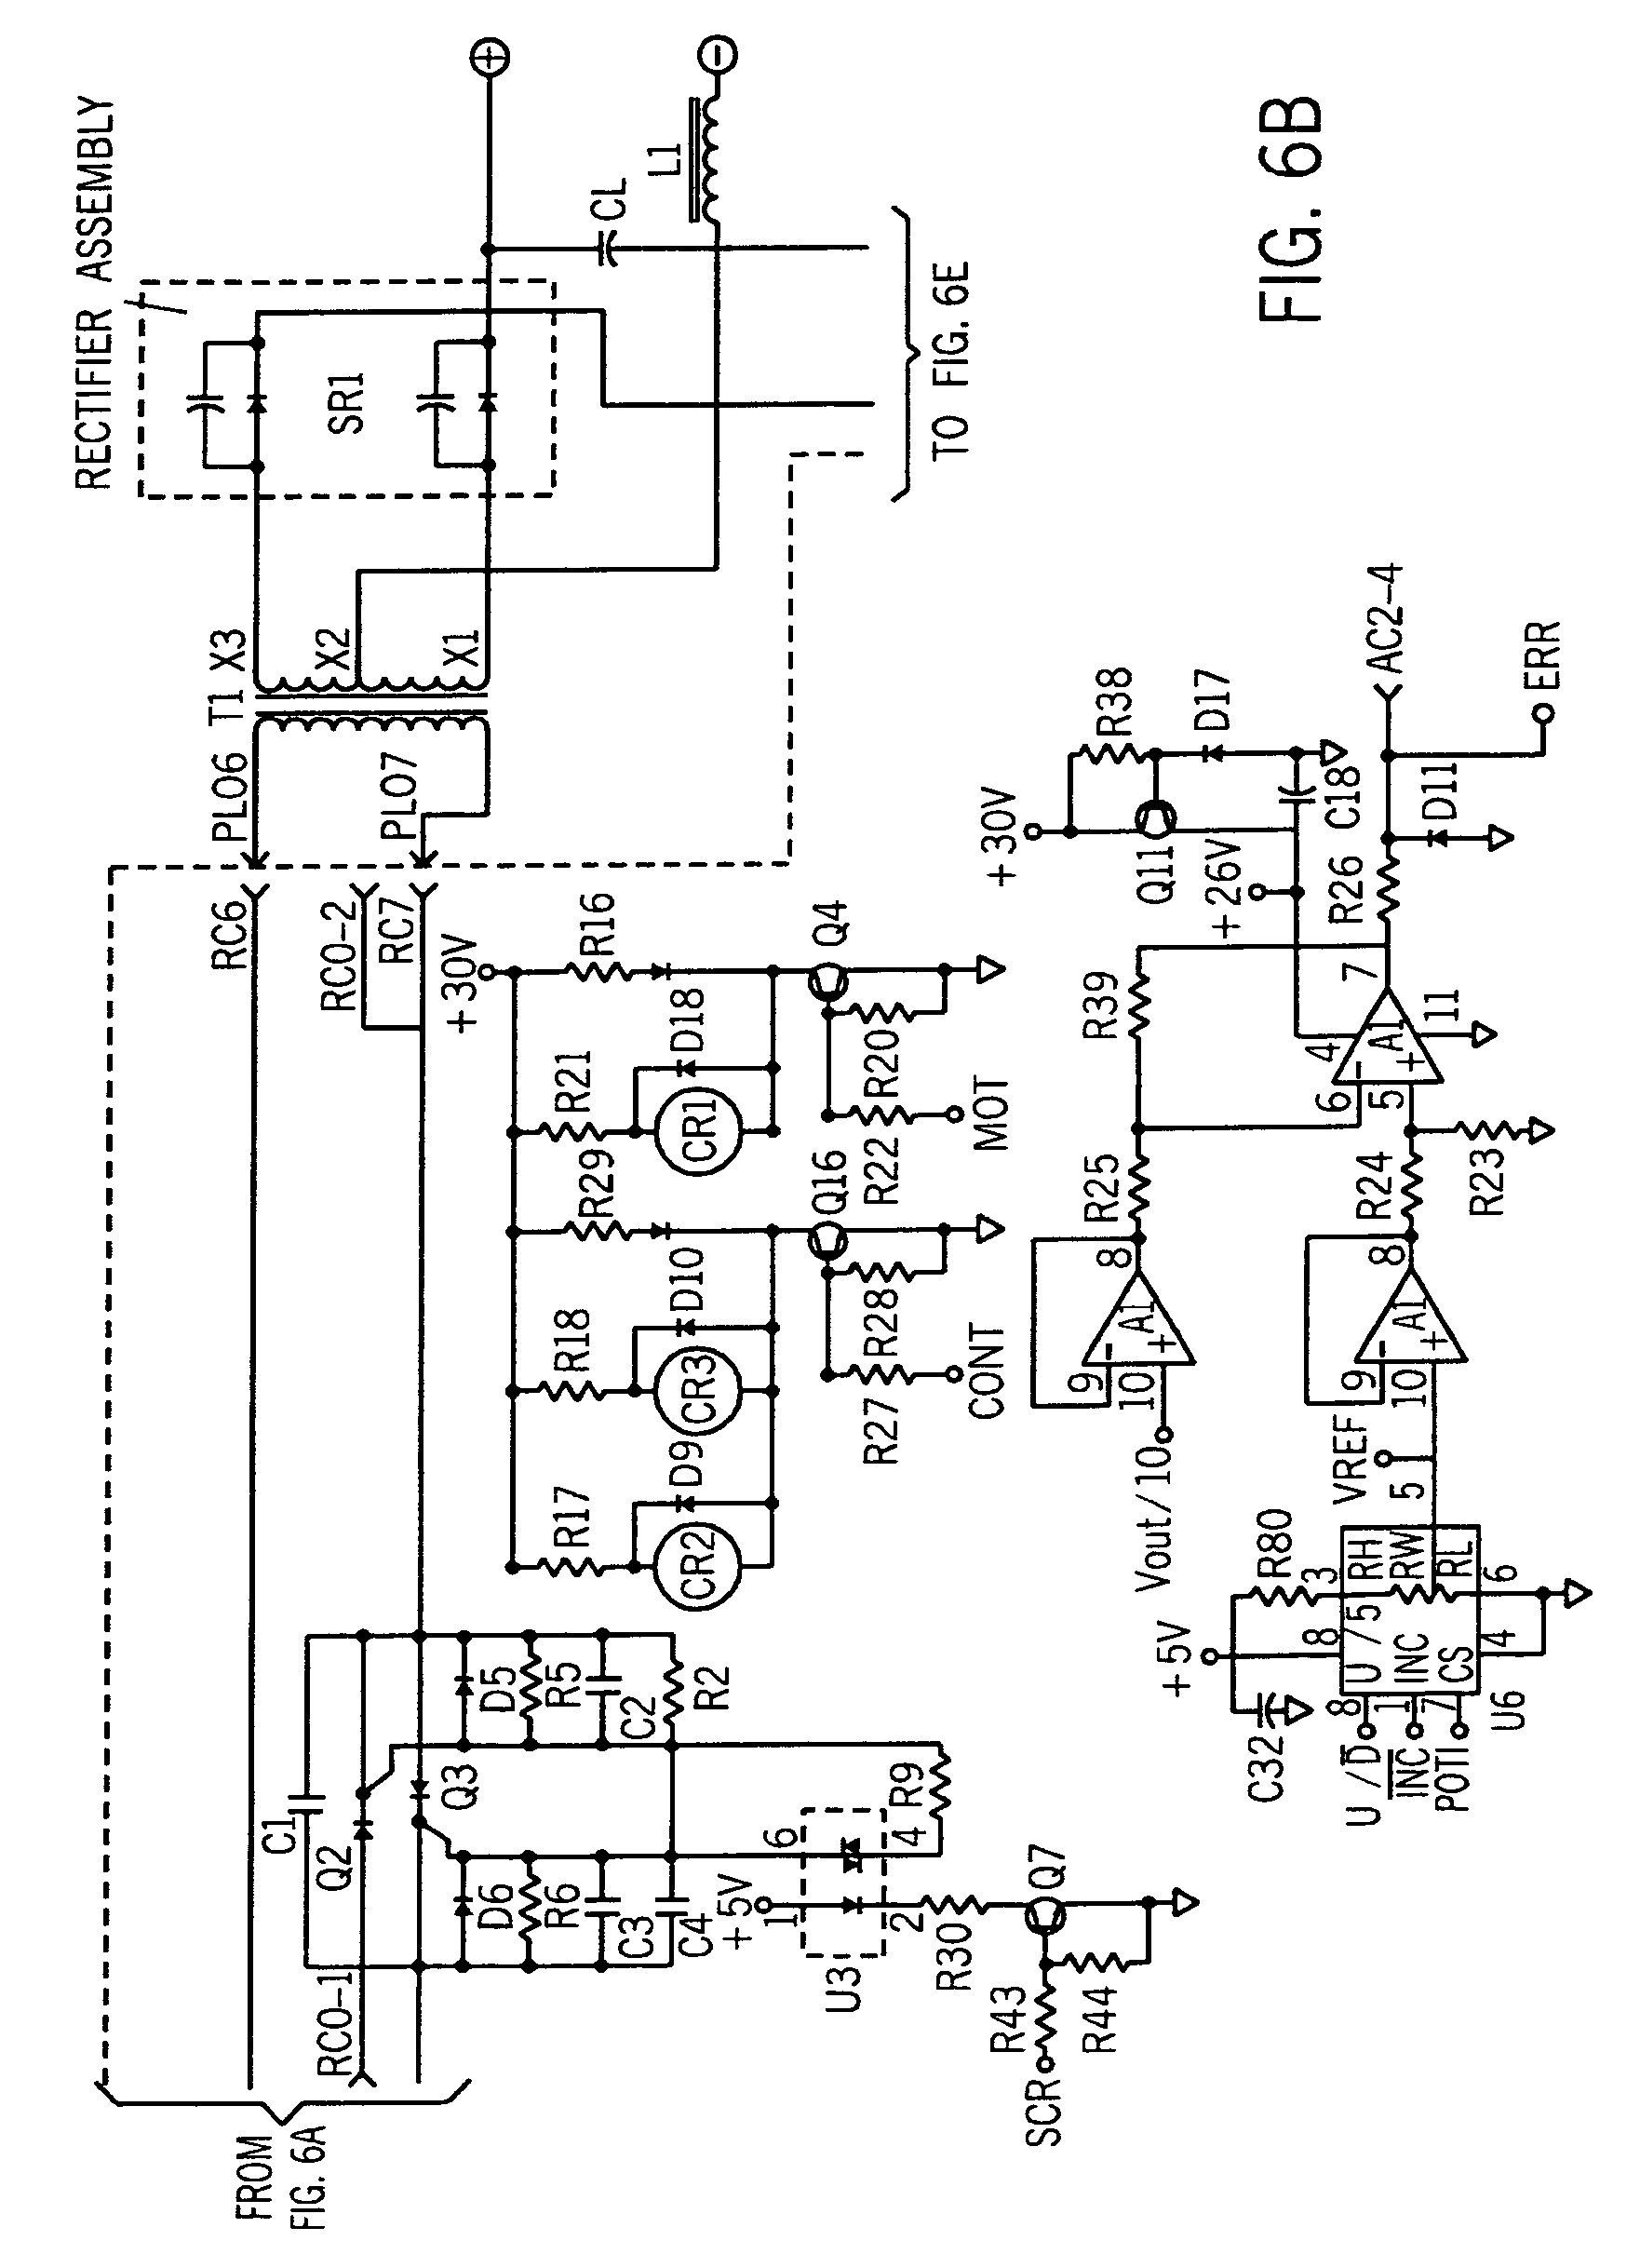 patent us8546728 - welder with integrated wire feeder having single-knob control